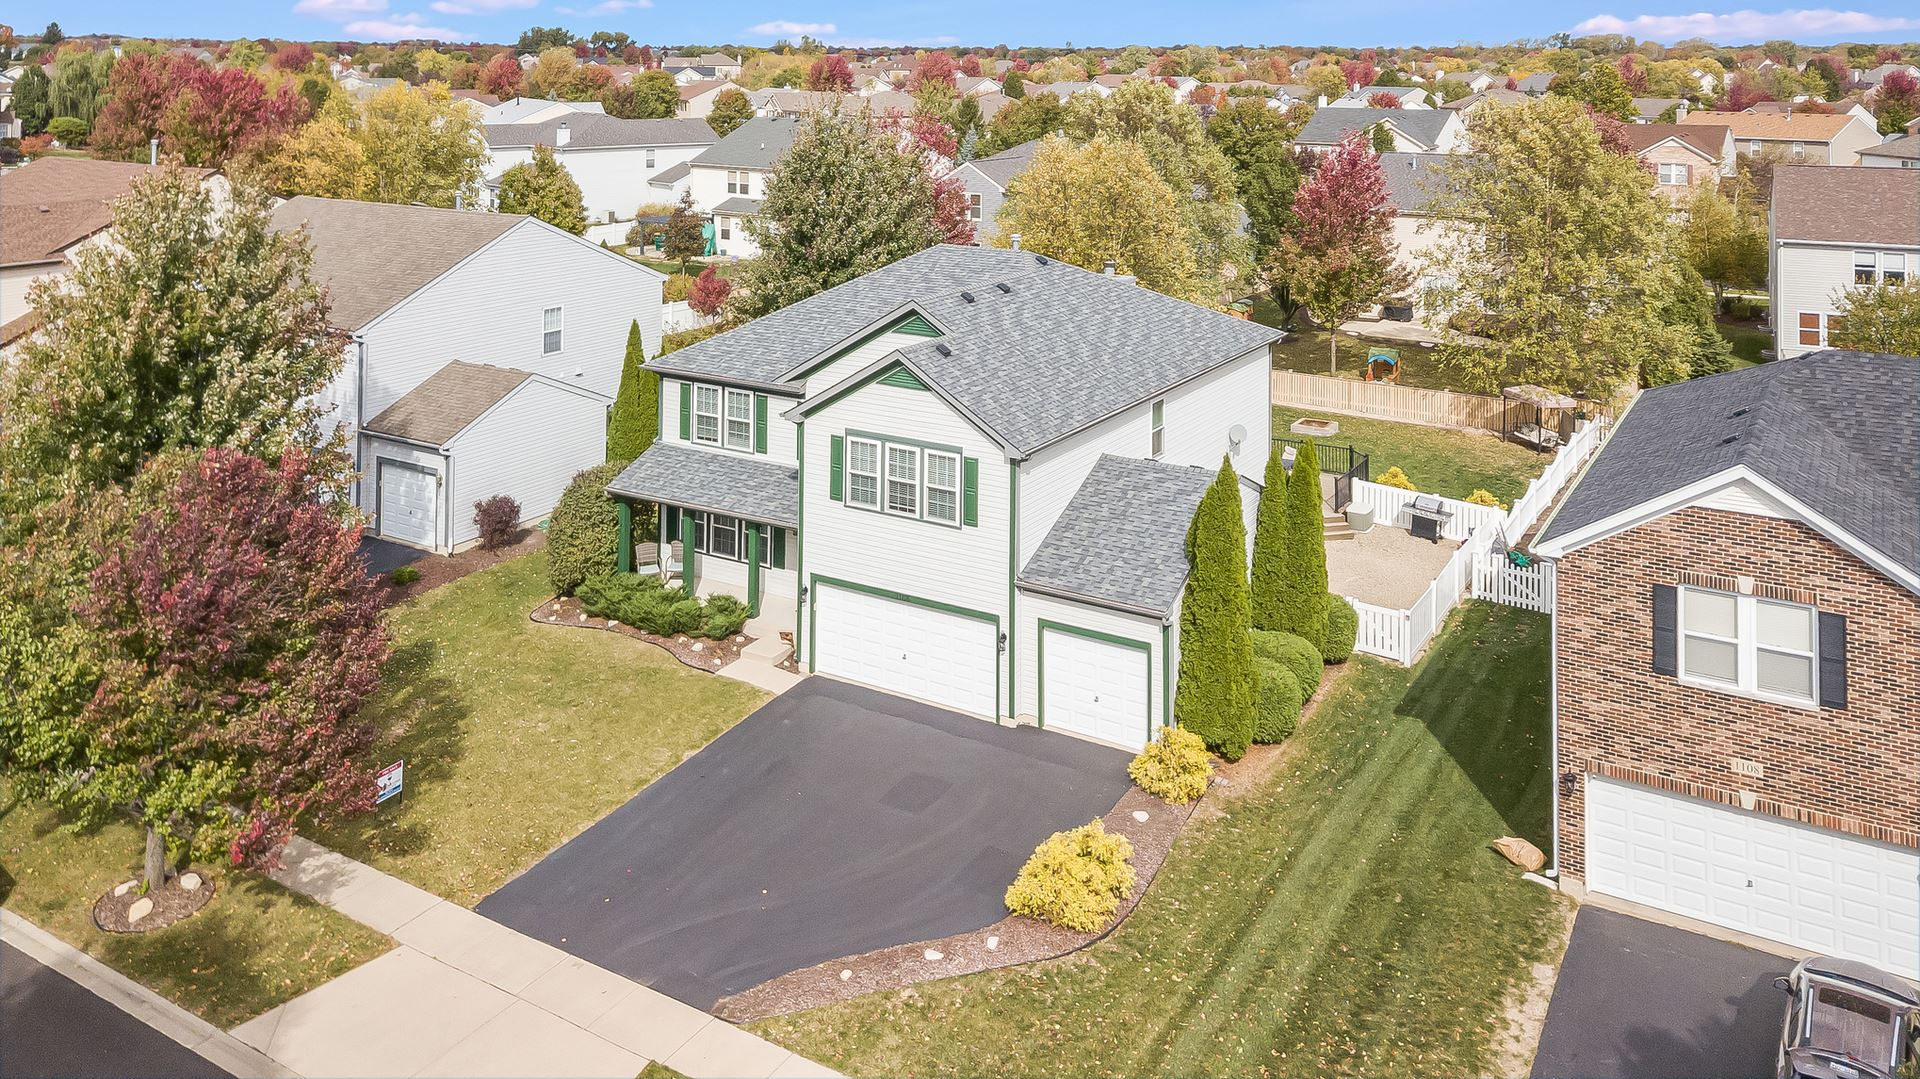 Photo of 1106 Butterfield Circle W, Shorewood, IL 60404 (MLS # 10890405)